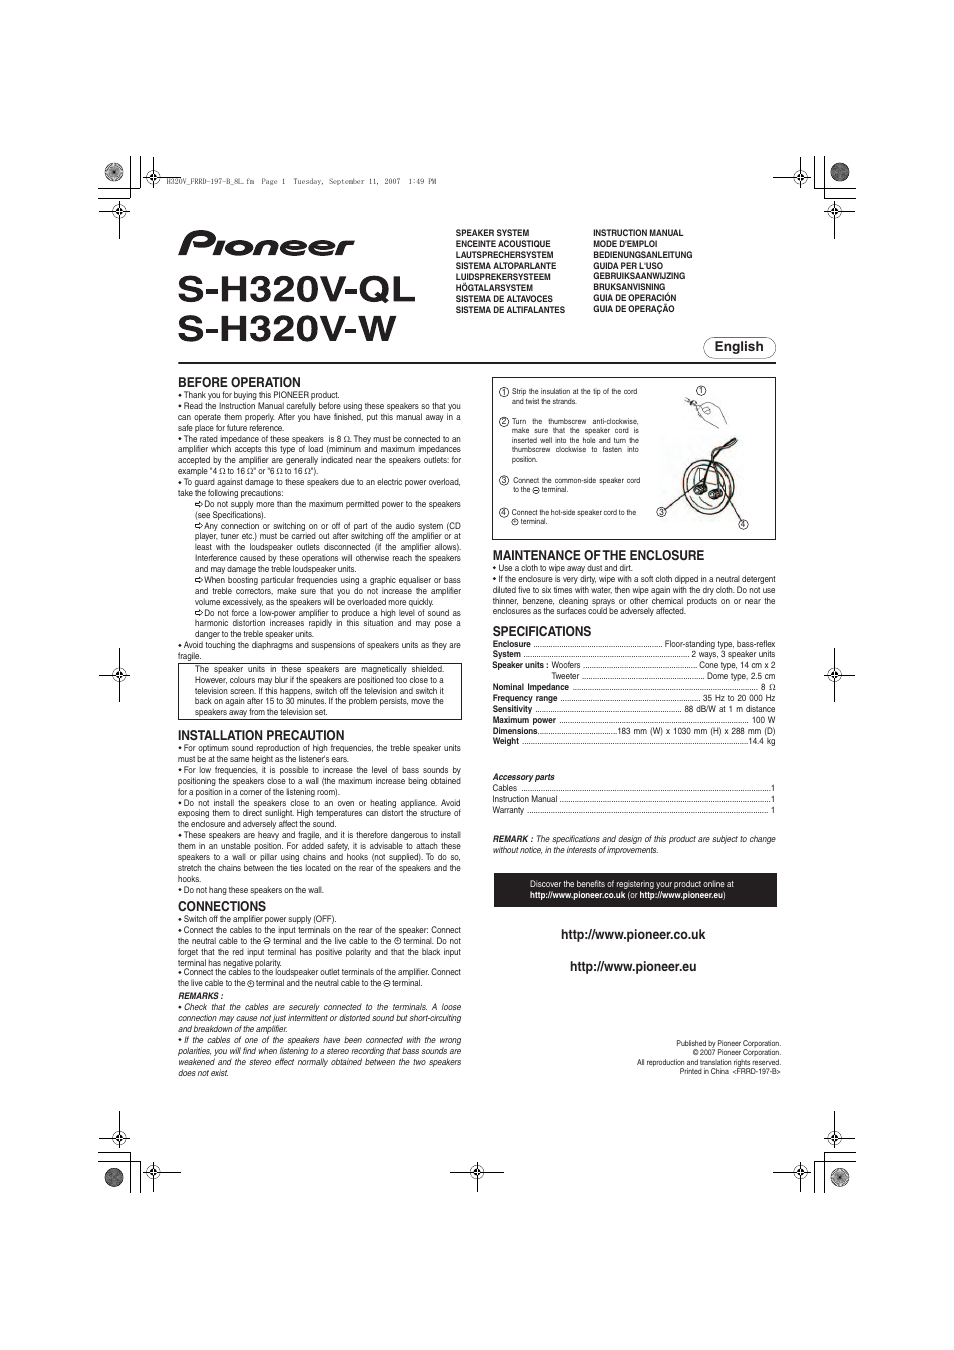 Pioneer S-H320V-QL User Manual | 8 pages | Also for: S-H320V-W